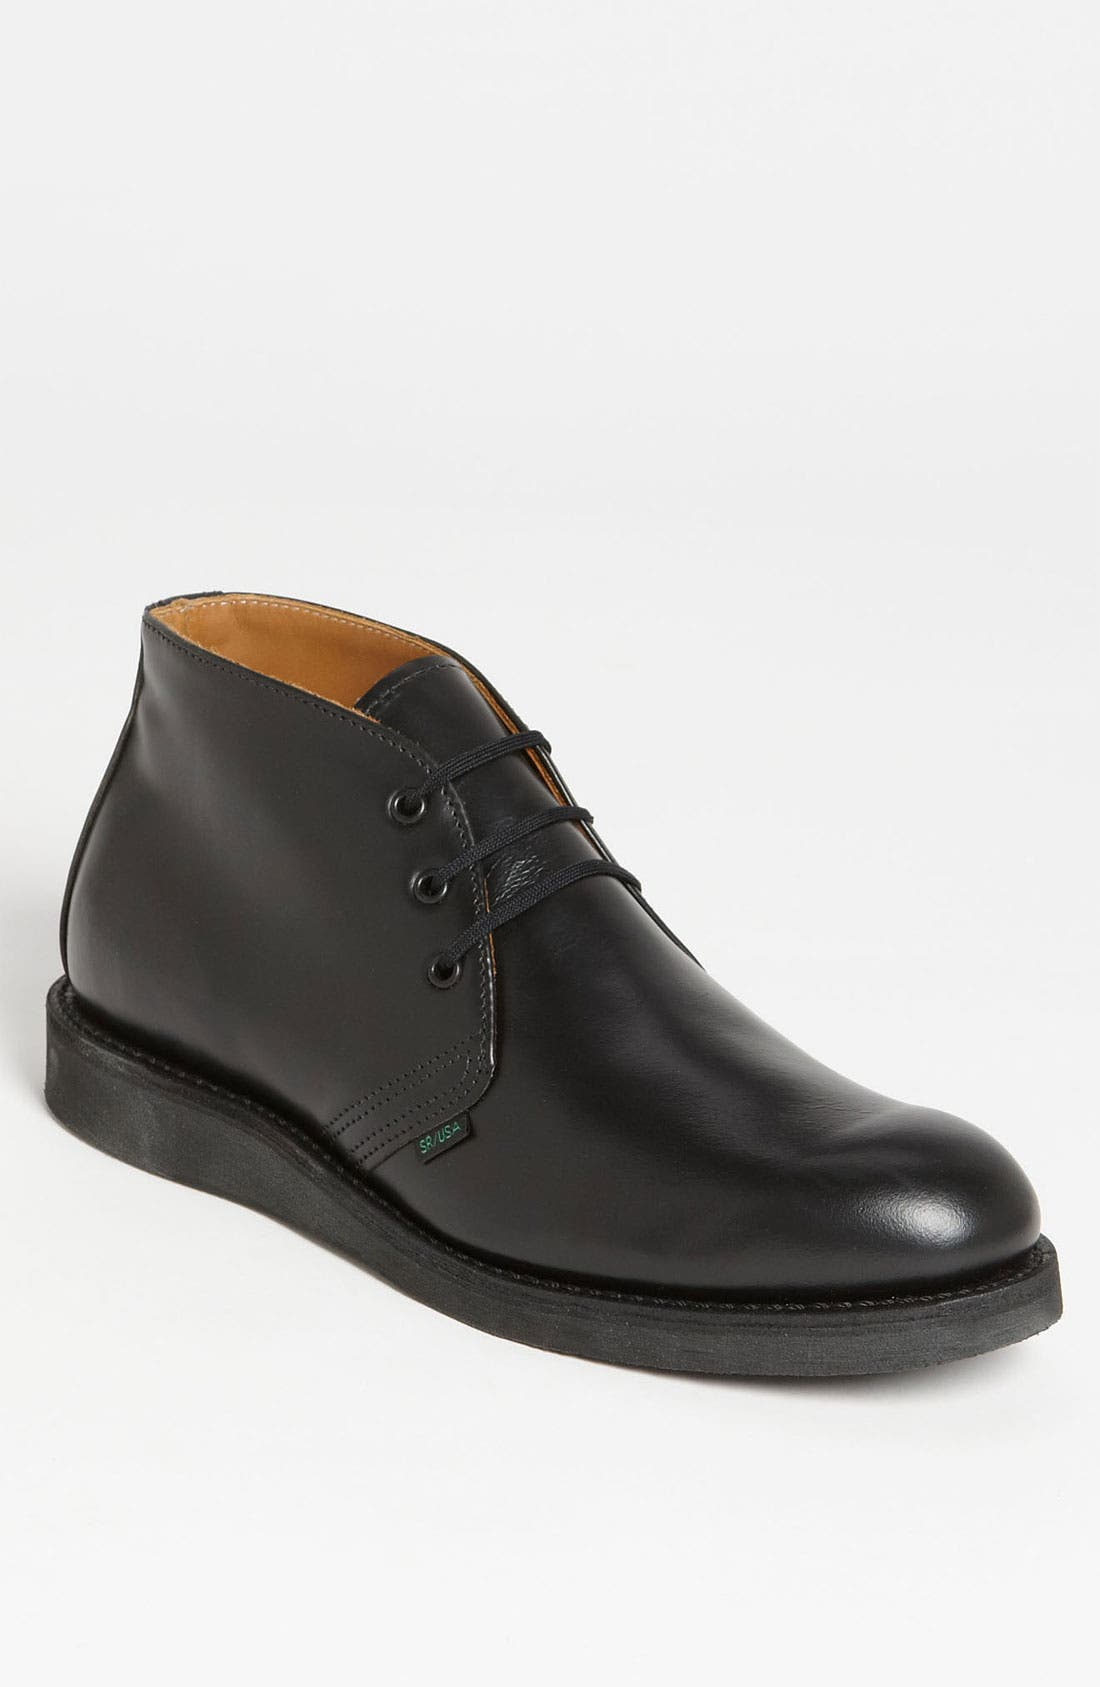 'Postman' Chukka Boot,                             Main thumbnail 1, color,                             BLACK CHAPARRAL- 9196